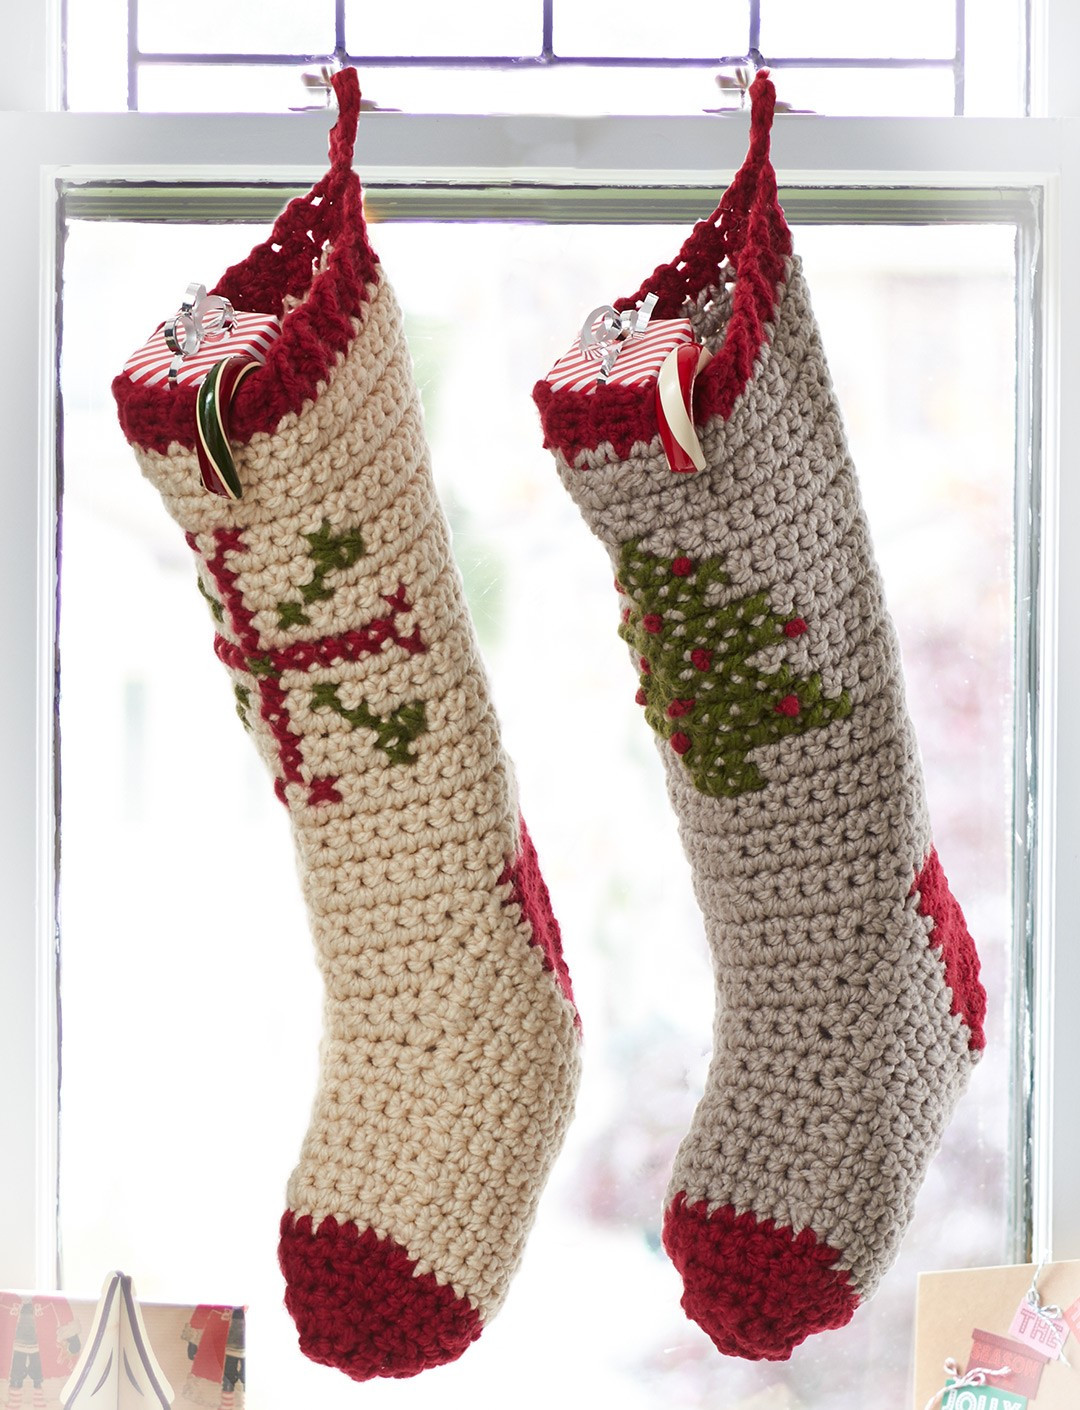 Inspirational Bernat Cross Stitch Stockings Crochet Pattern Crochet Pattern for Christmas Stocking Of Fresh 40 All Free Crochet Christmas Stocking Patterns Patterns Hub Crochet Pattern for Christmas Stocking